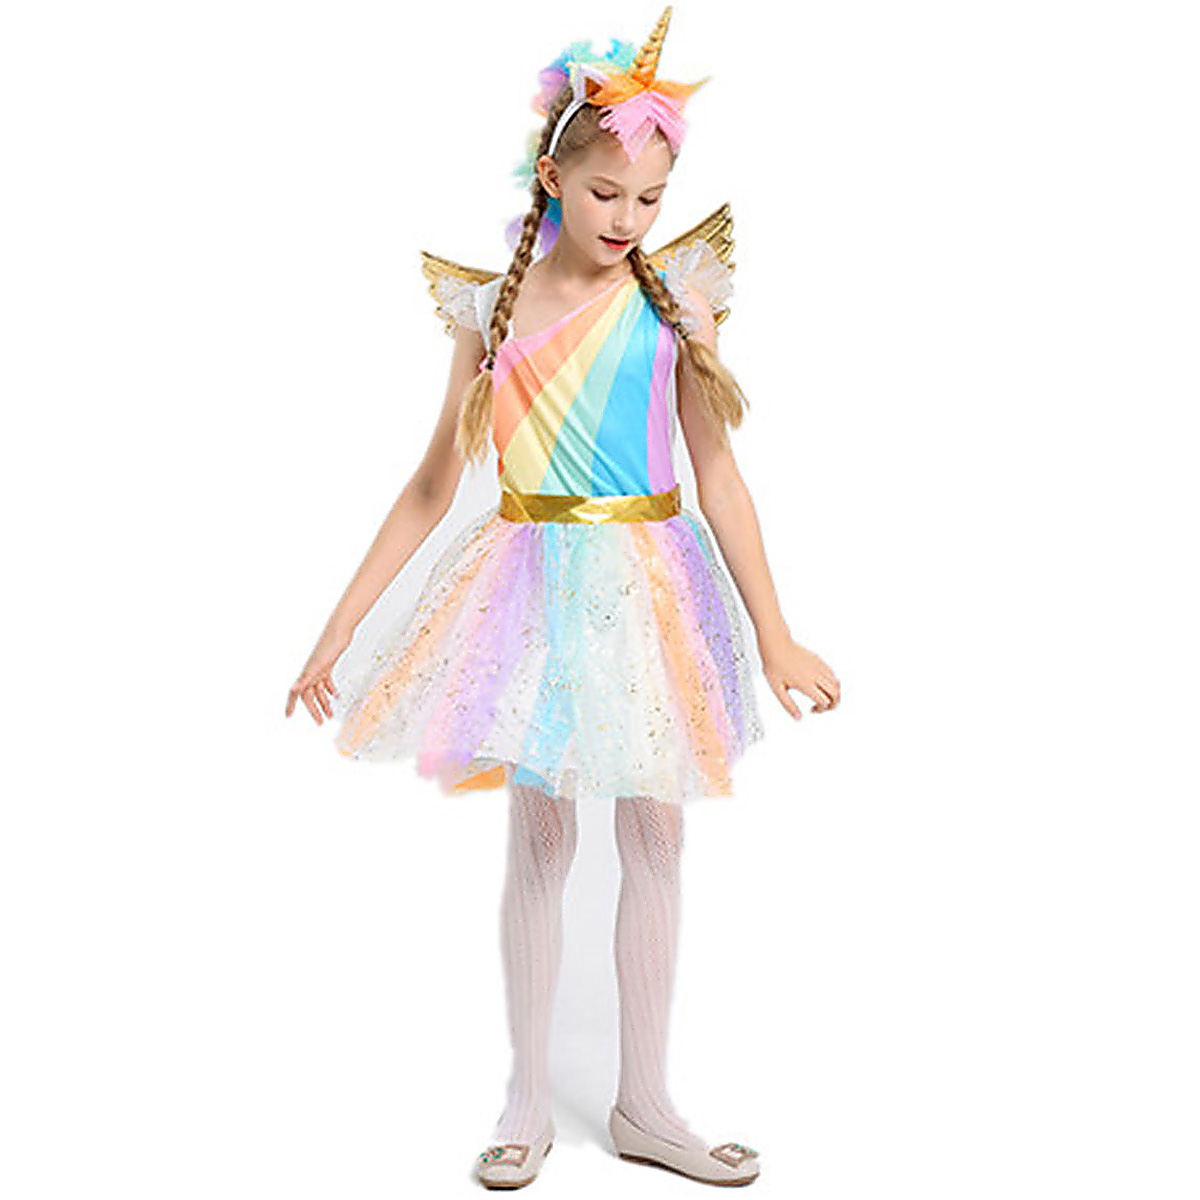 Girls Unicorn Costume Rainbow Dress with Wing Headband for Halloween Party